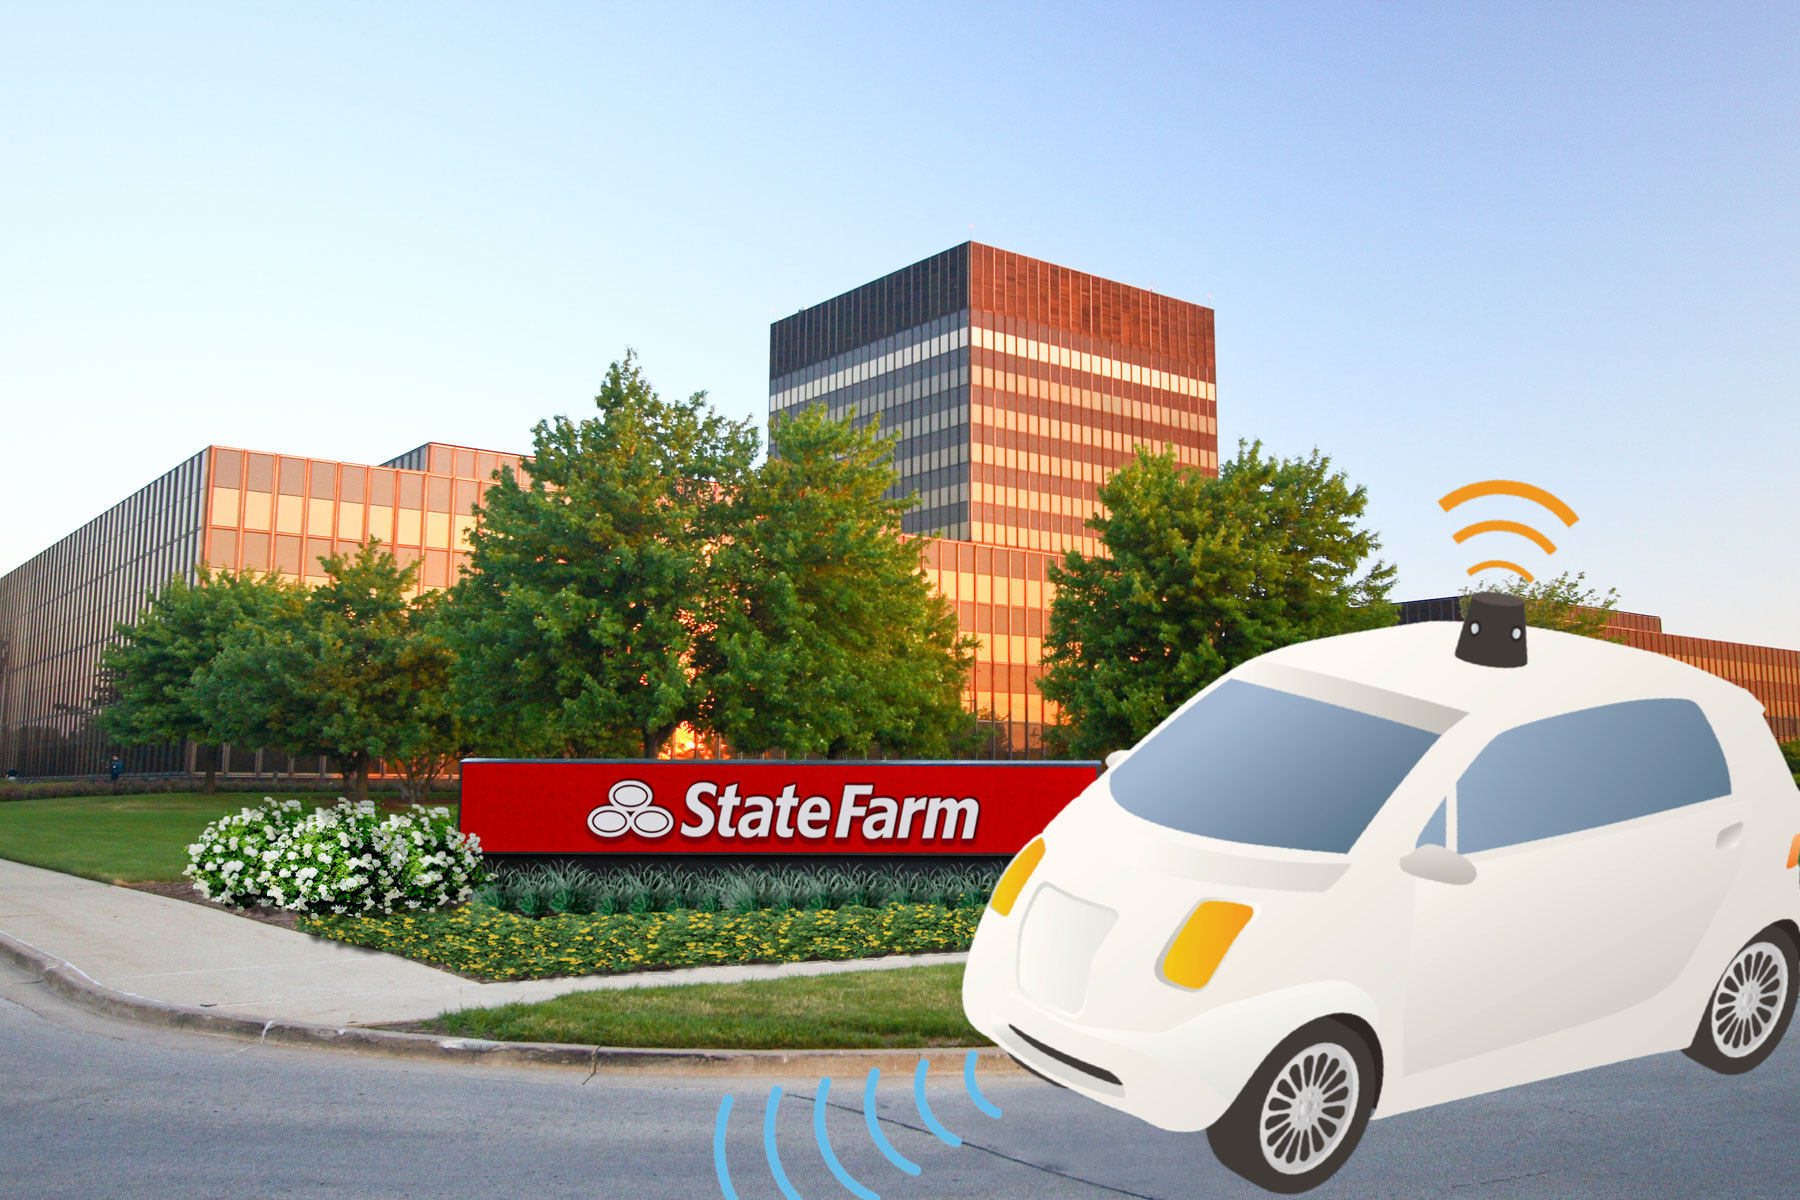 State Farm Self-Driving Bloomington-Normal.jpg